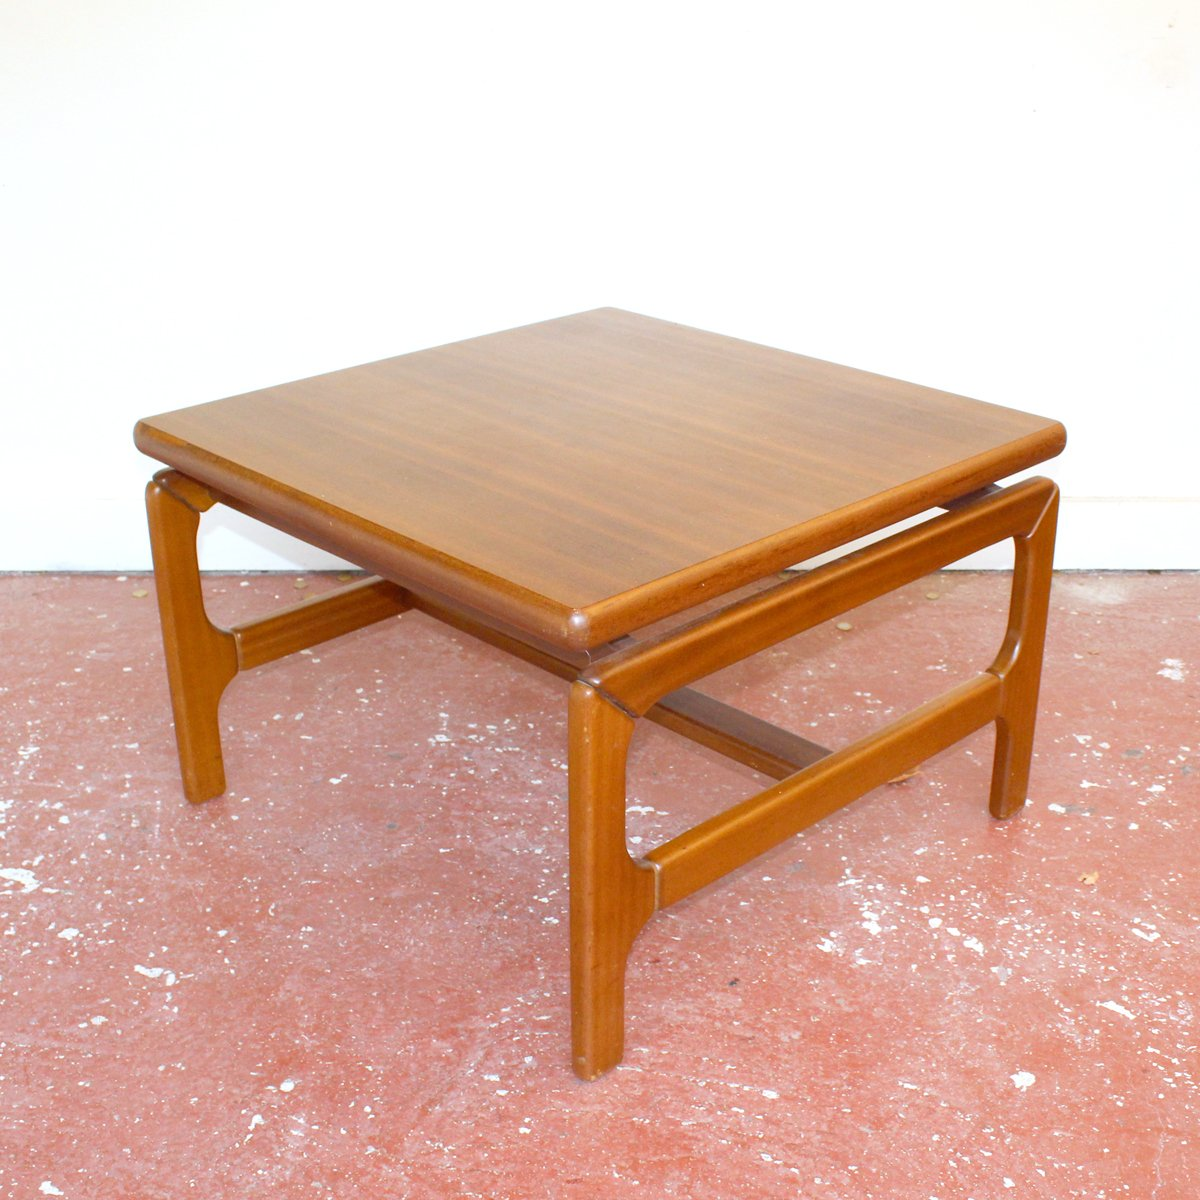 Fred coffee table rascalartsnyc mid century teak coffee table by fred juul for at pamono geotapseo Image collections